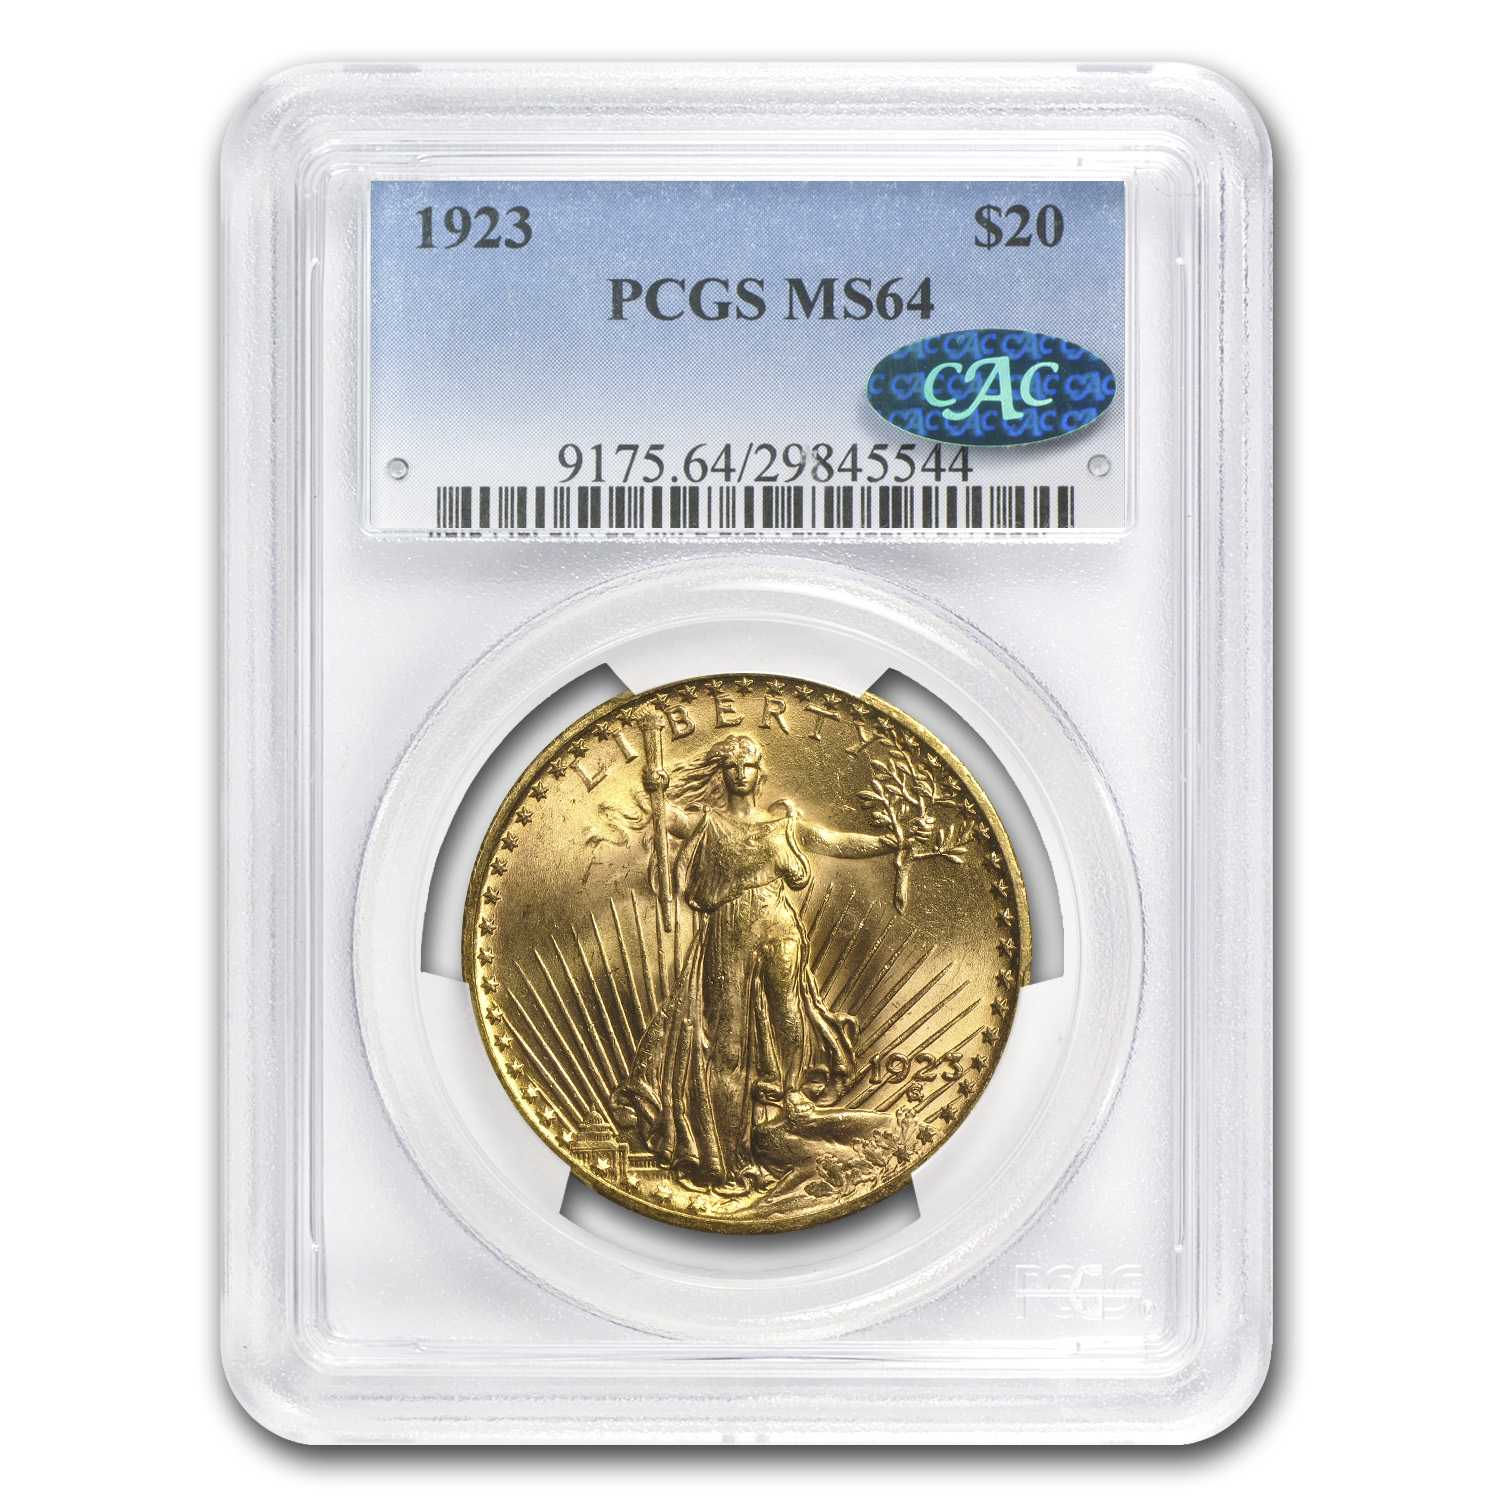 1923 $20 St. Gaudens Gold Double Eagle - MS-64 PCGS CAC